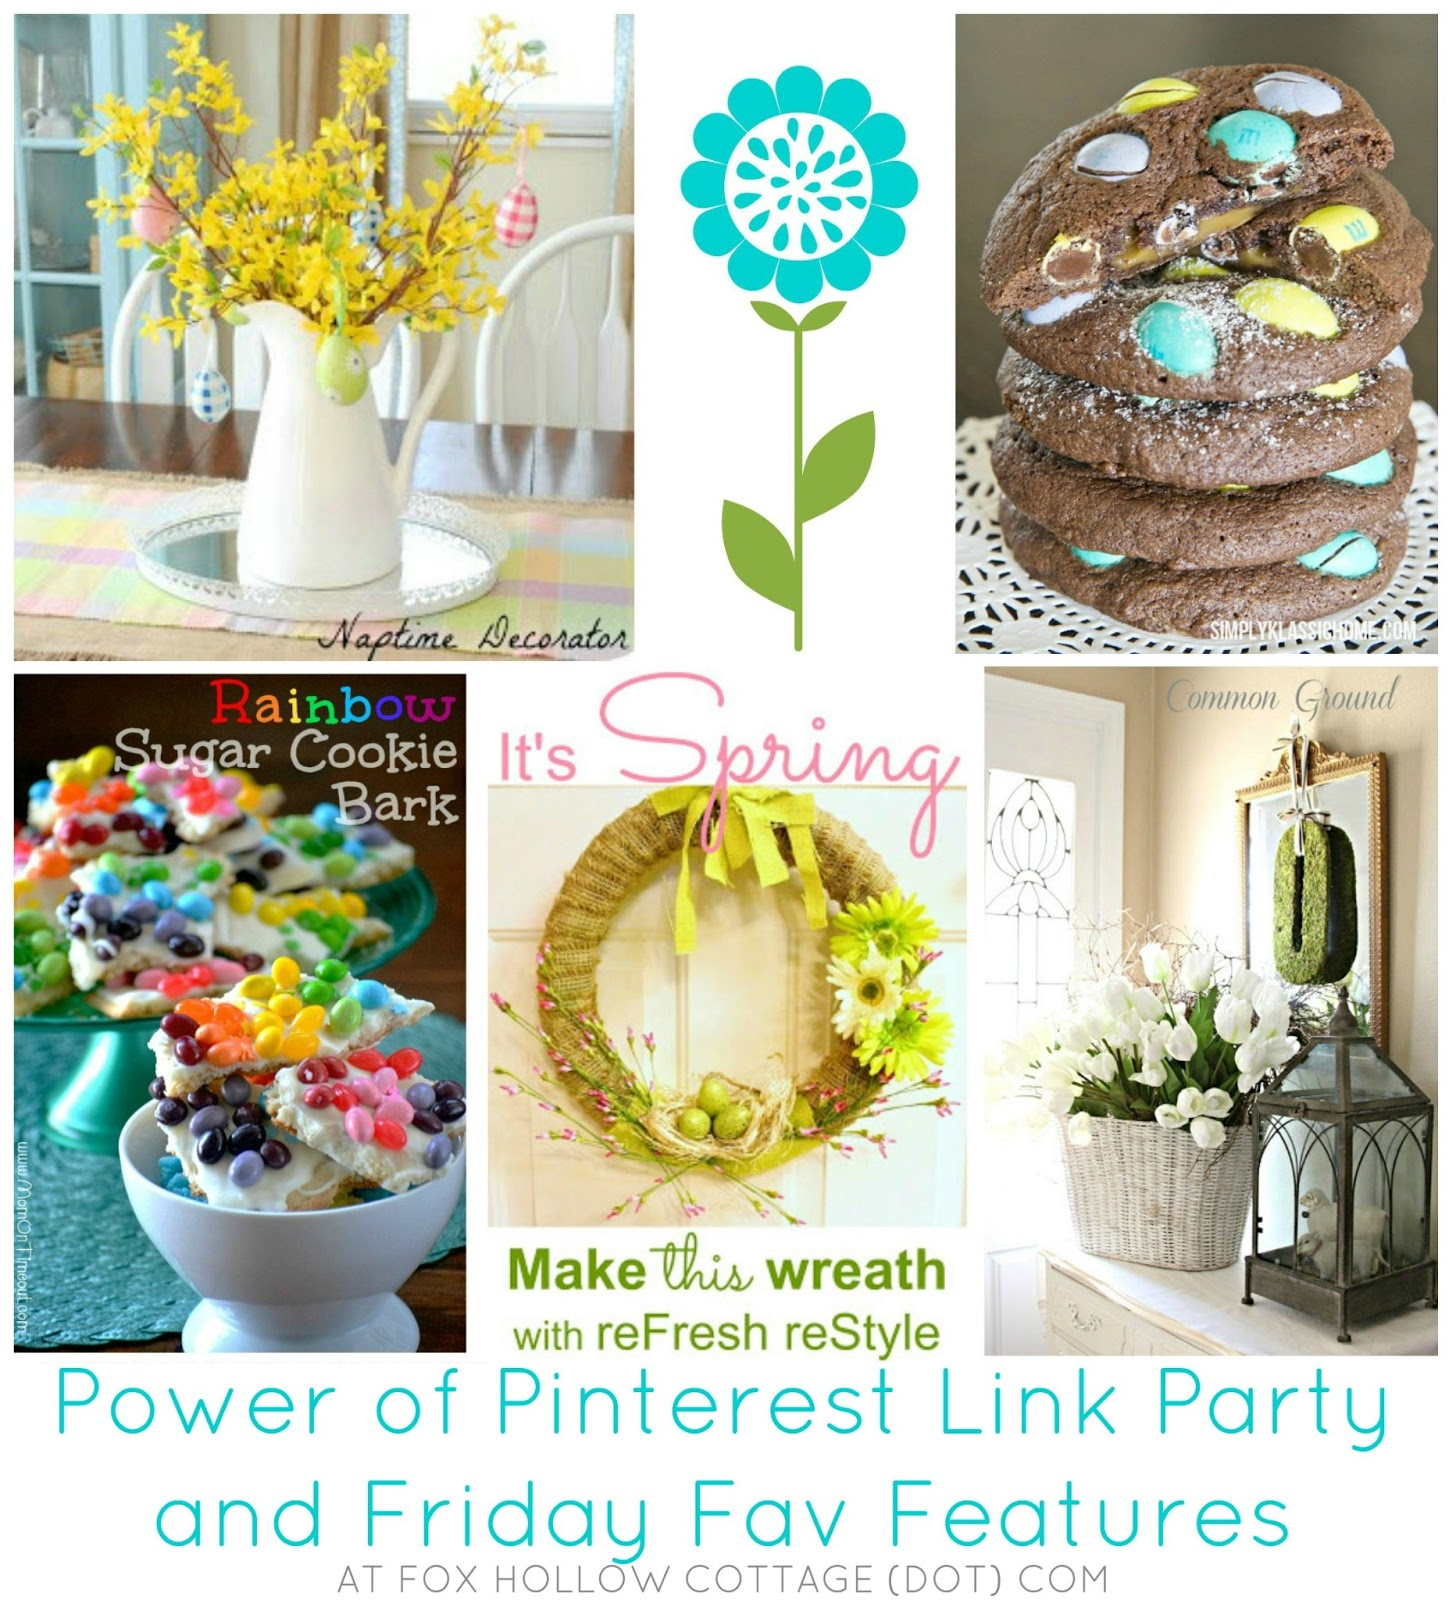 Power Of Pinterest Link Party And Friday Fav Features Fox Hollow Cottage